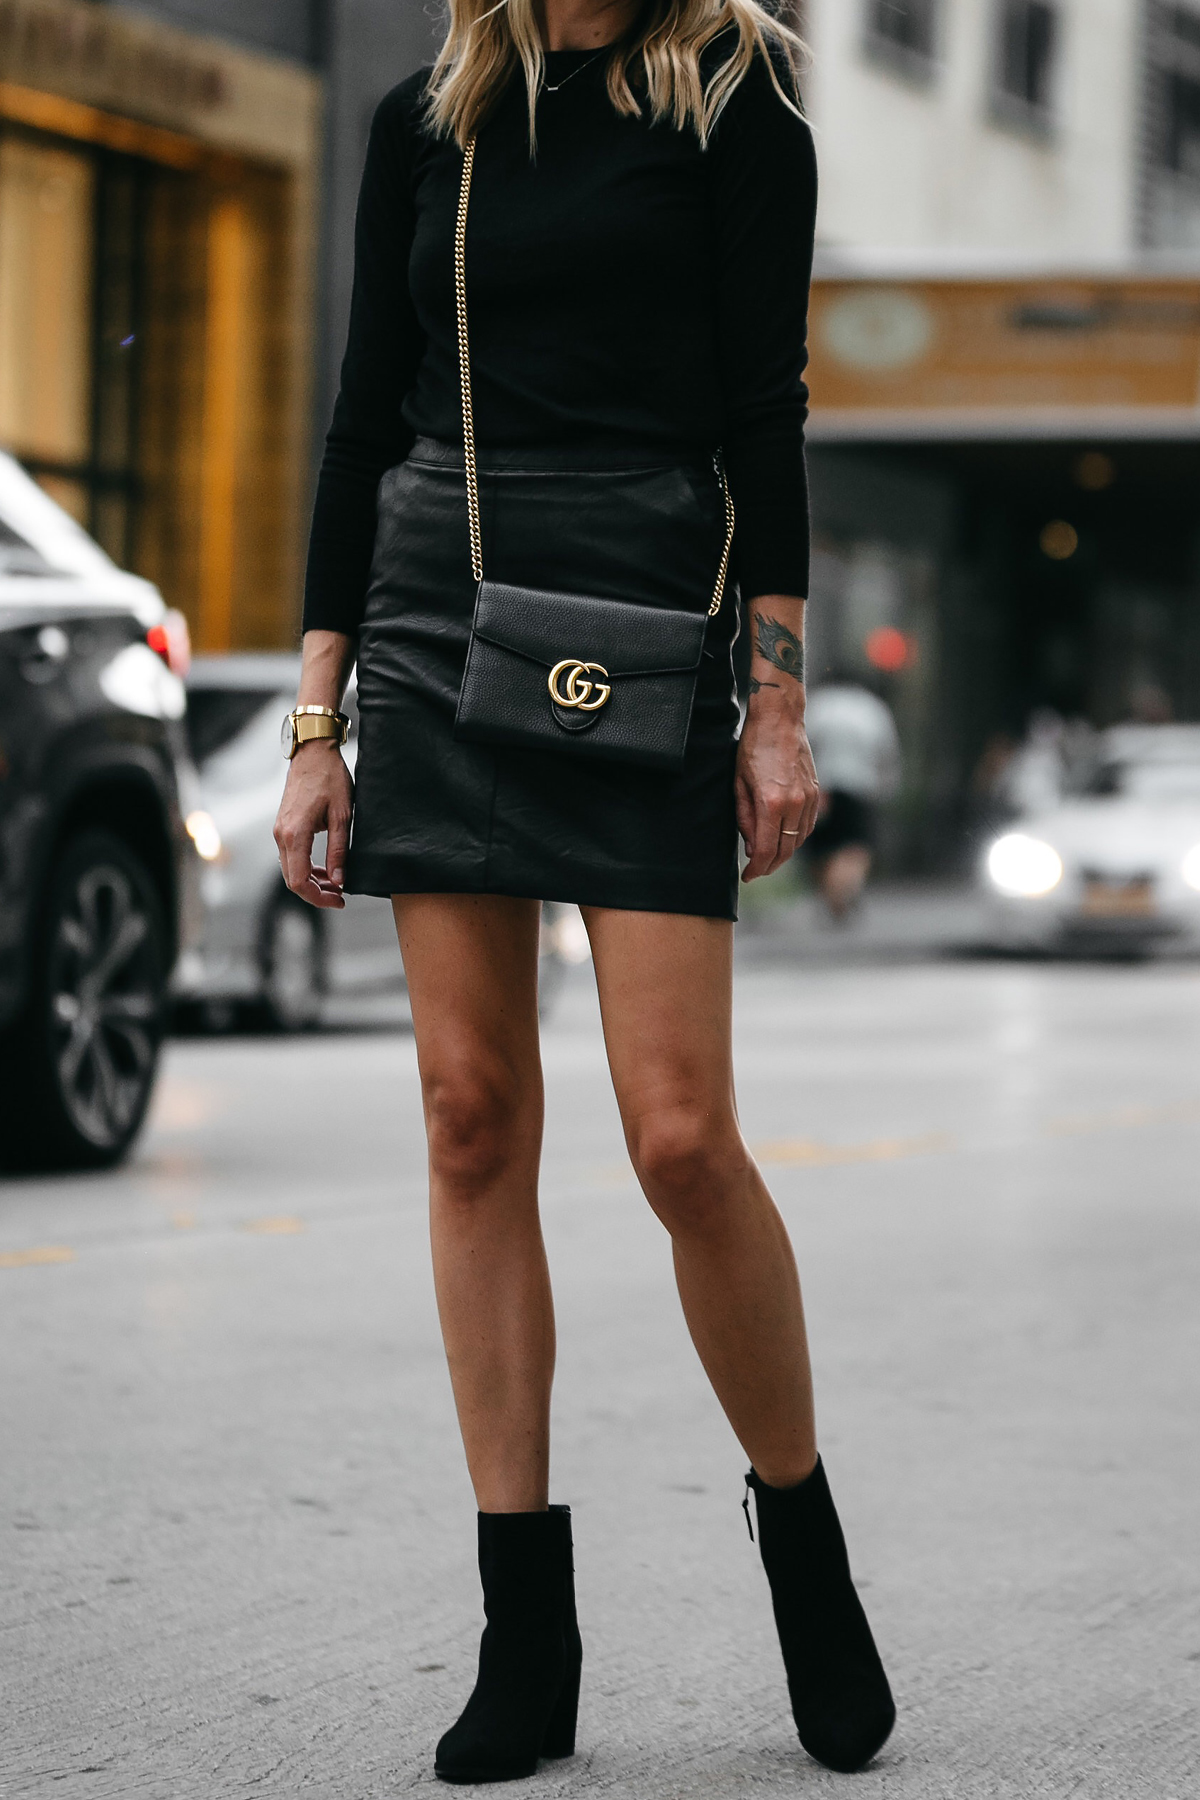 Club Monaco Black Sweater Topshop Black Leather Mini Skirt Outfit Gucci Marmont Handbag Stuart Weitzman Black Booties Fashion Jackson Dallas Blogger Fashion Blogger Street Style